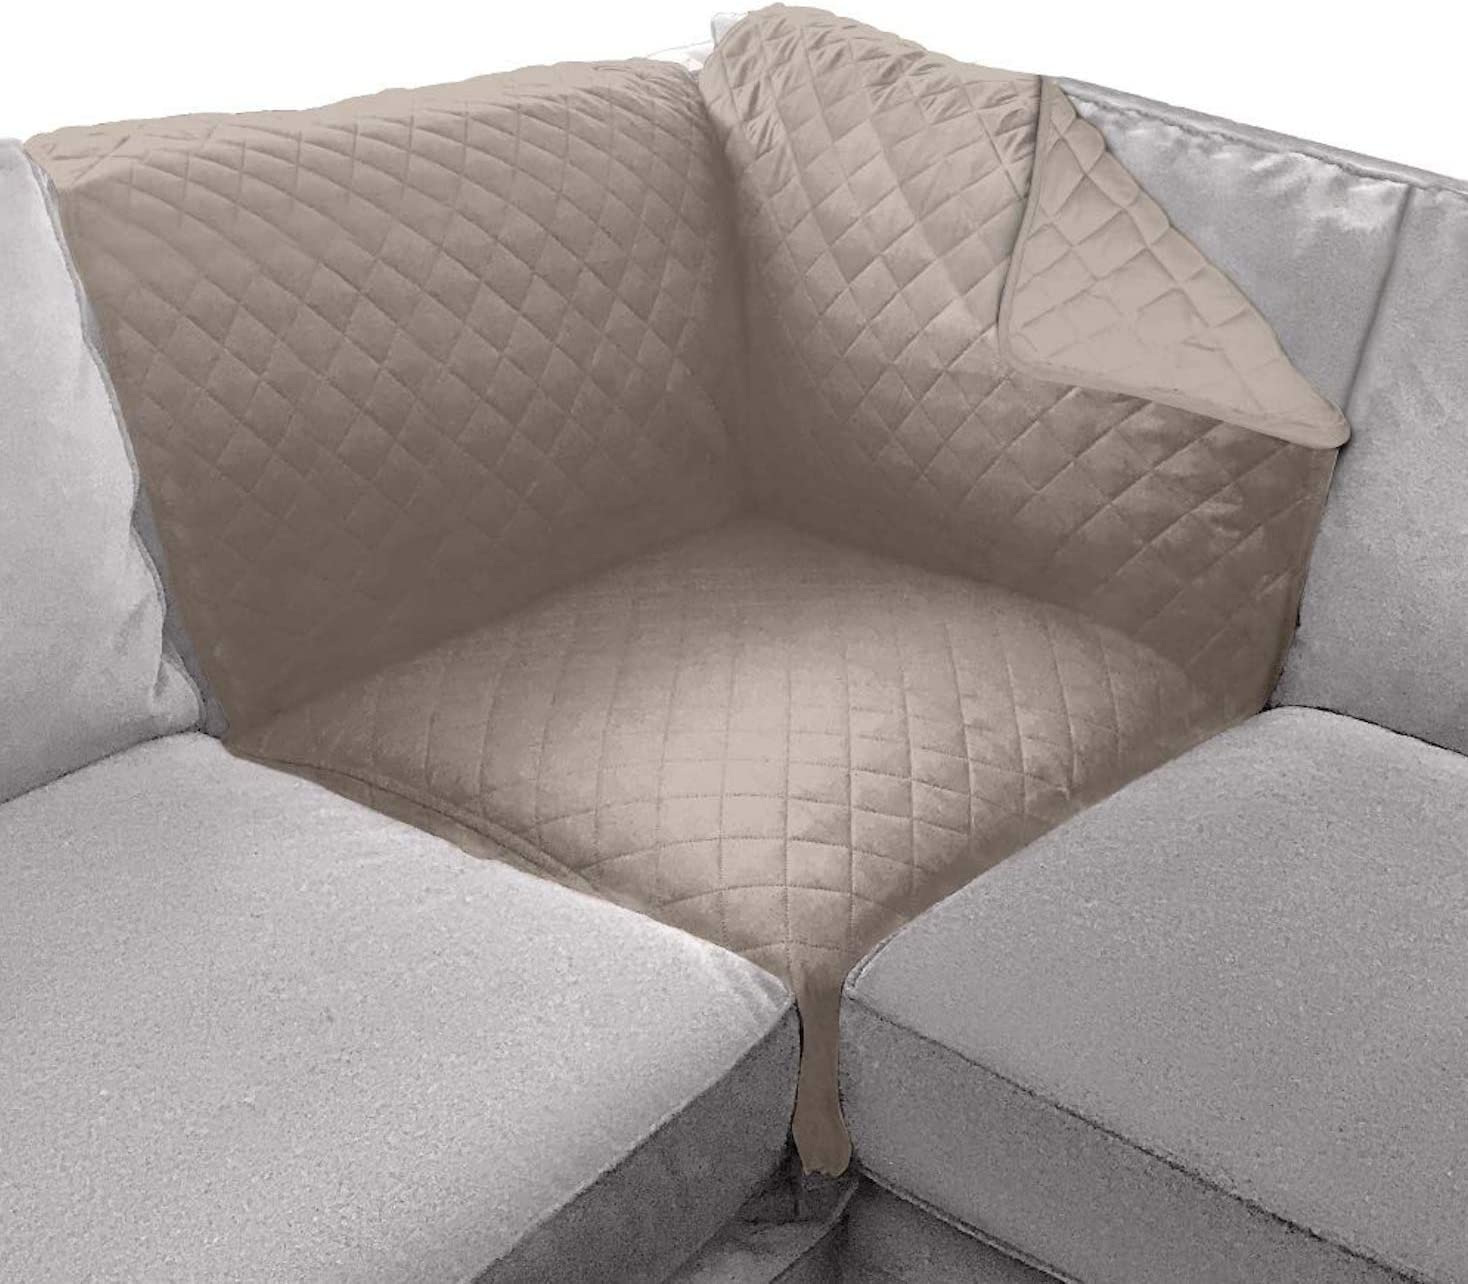 Sofa Shield Original Patent Pending Sofa Corner Sectional Slipcover, Many Colors, 30x30 Inch, Reversible Washable Furniture Protector with Straps, Sectional Slip Cover for Pet Dogs, Cat, Light Taupe